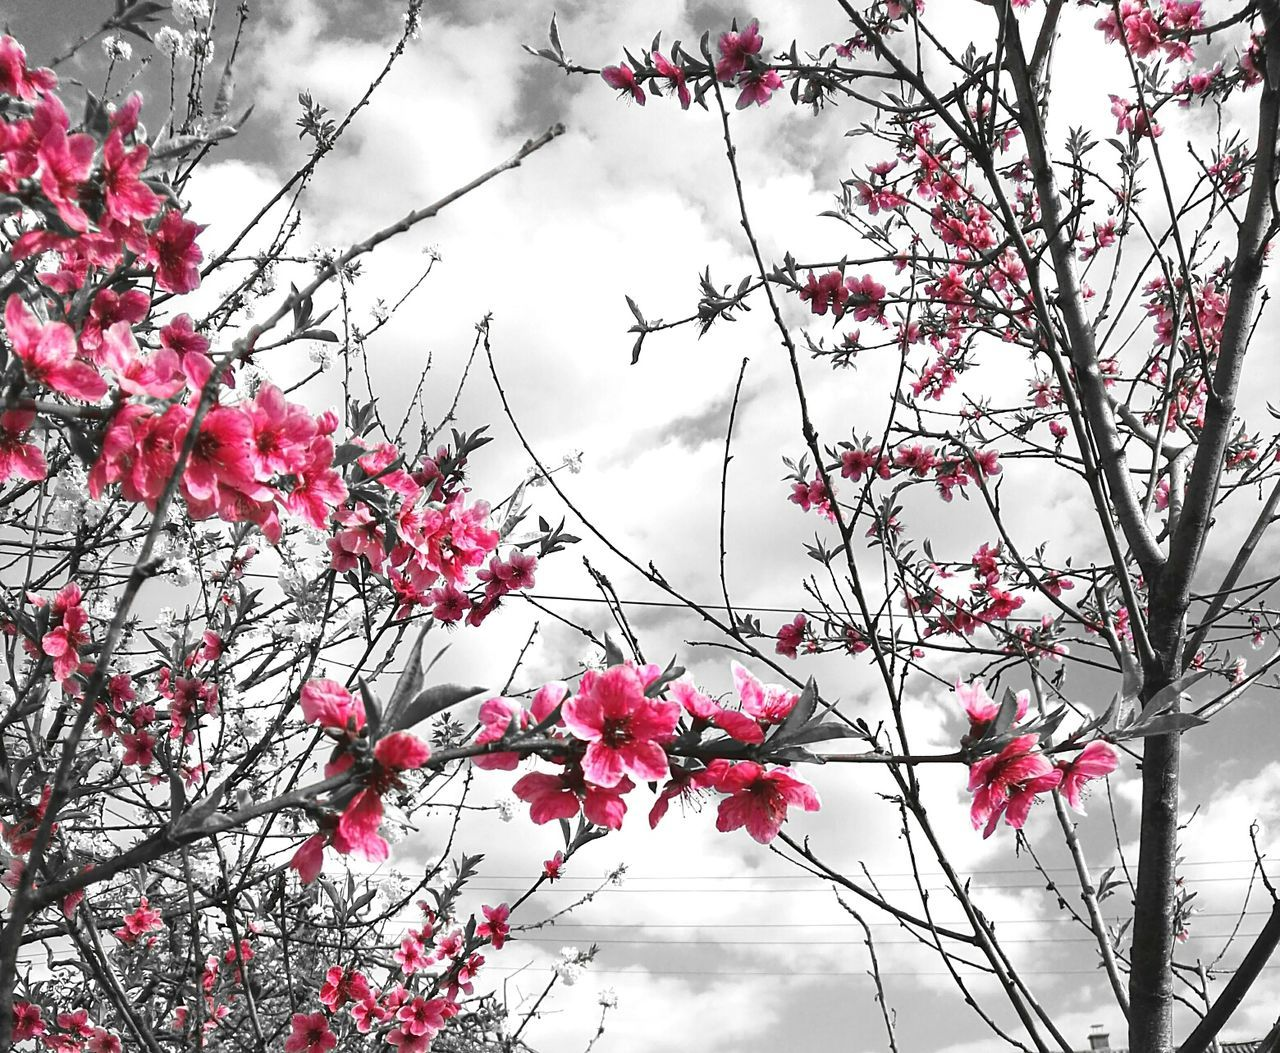 flower, growth, beauty in nature, nature, branch, tree, fragility, pink color, freshness, blossom, petal, no people, day, springtime, outdoors, plant, low angle view, sky, red, blooming, flower head, close-up